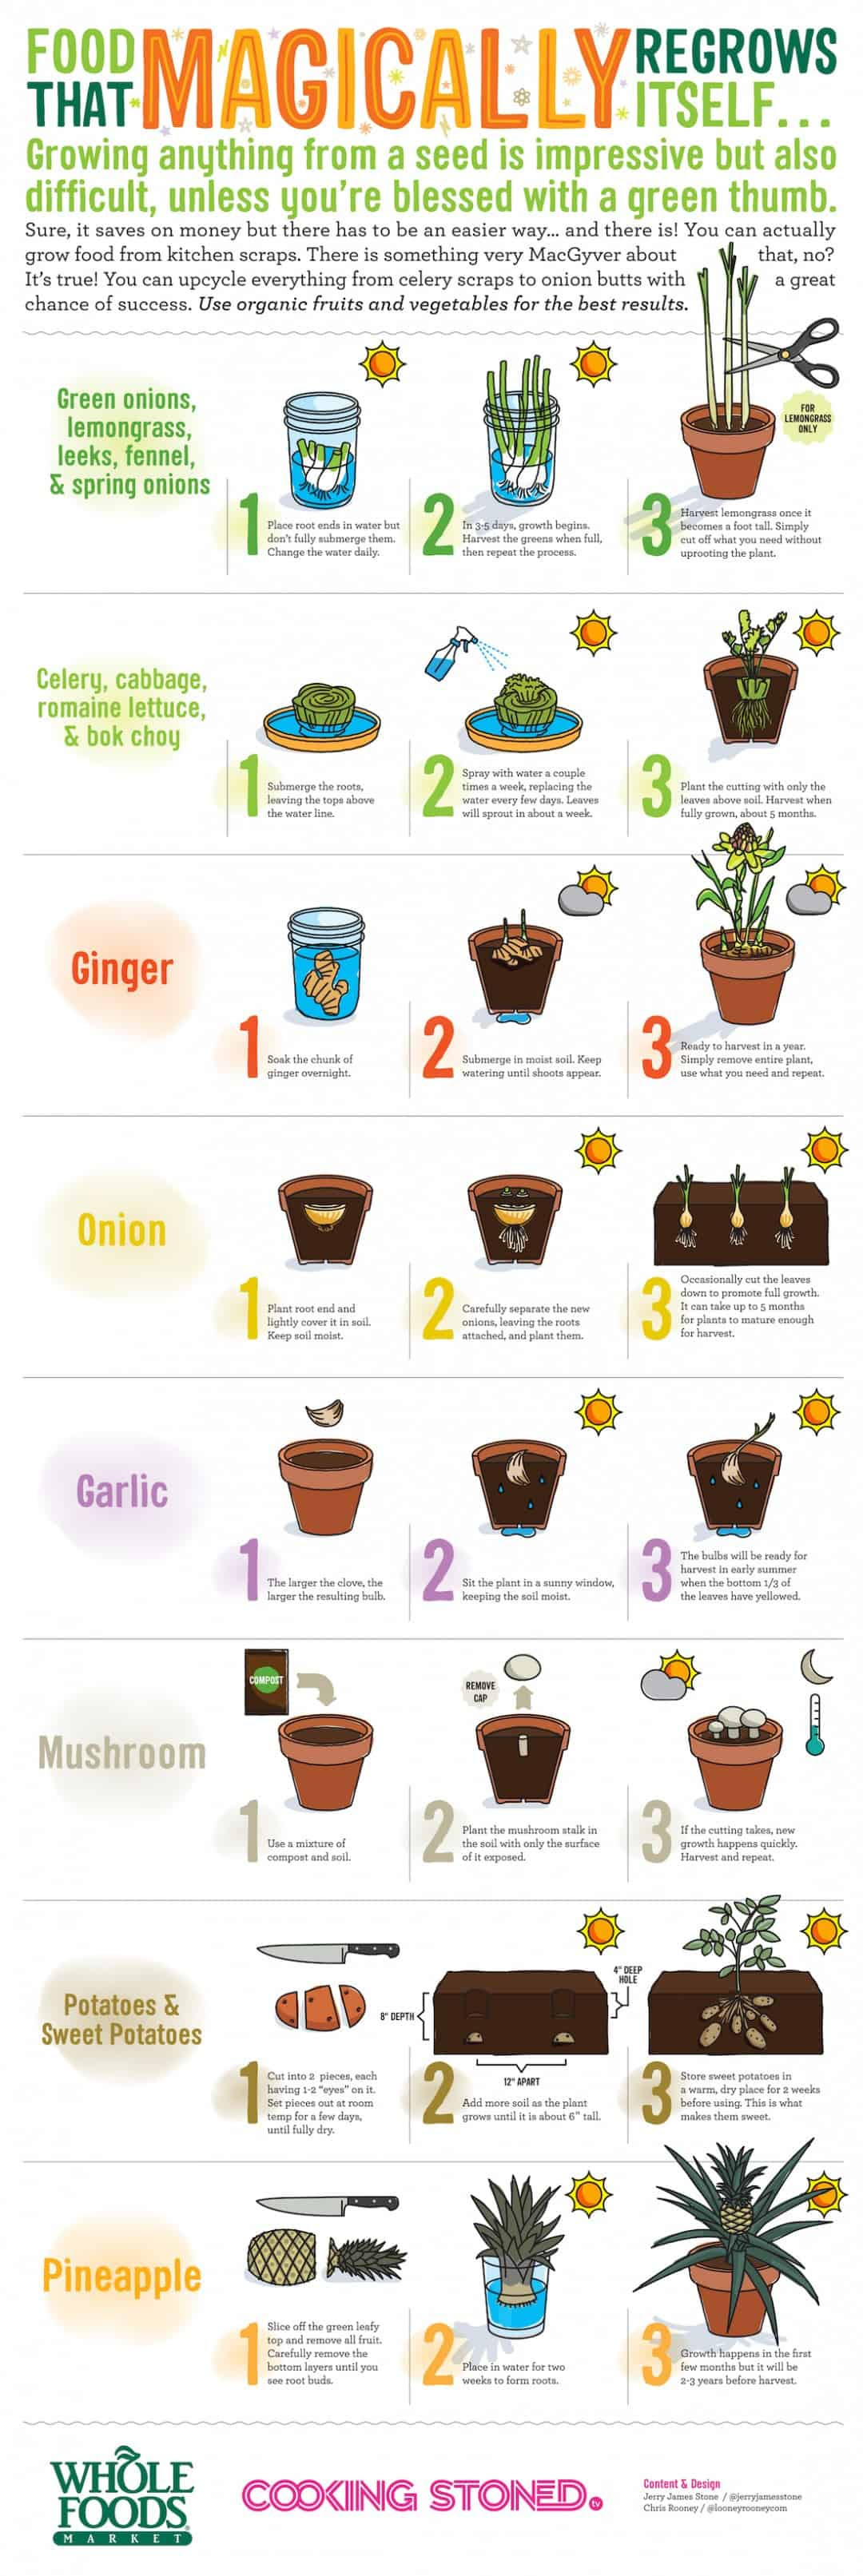 These Foods Magically Regrow Themselves From Kitchen Scraps [Infographic]